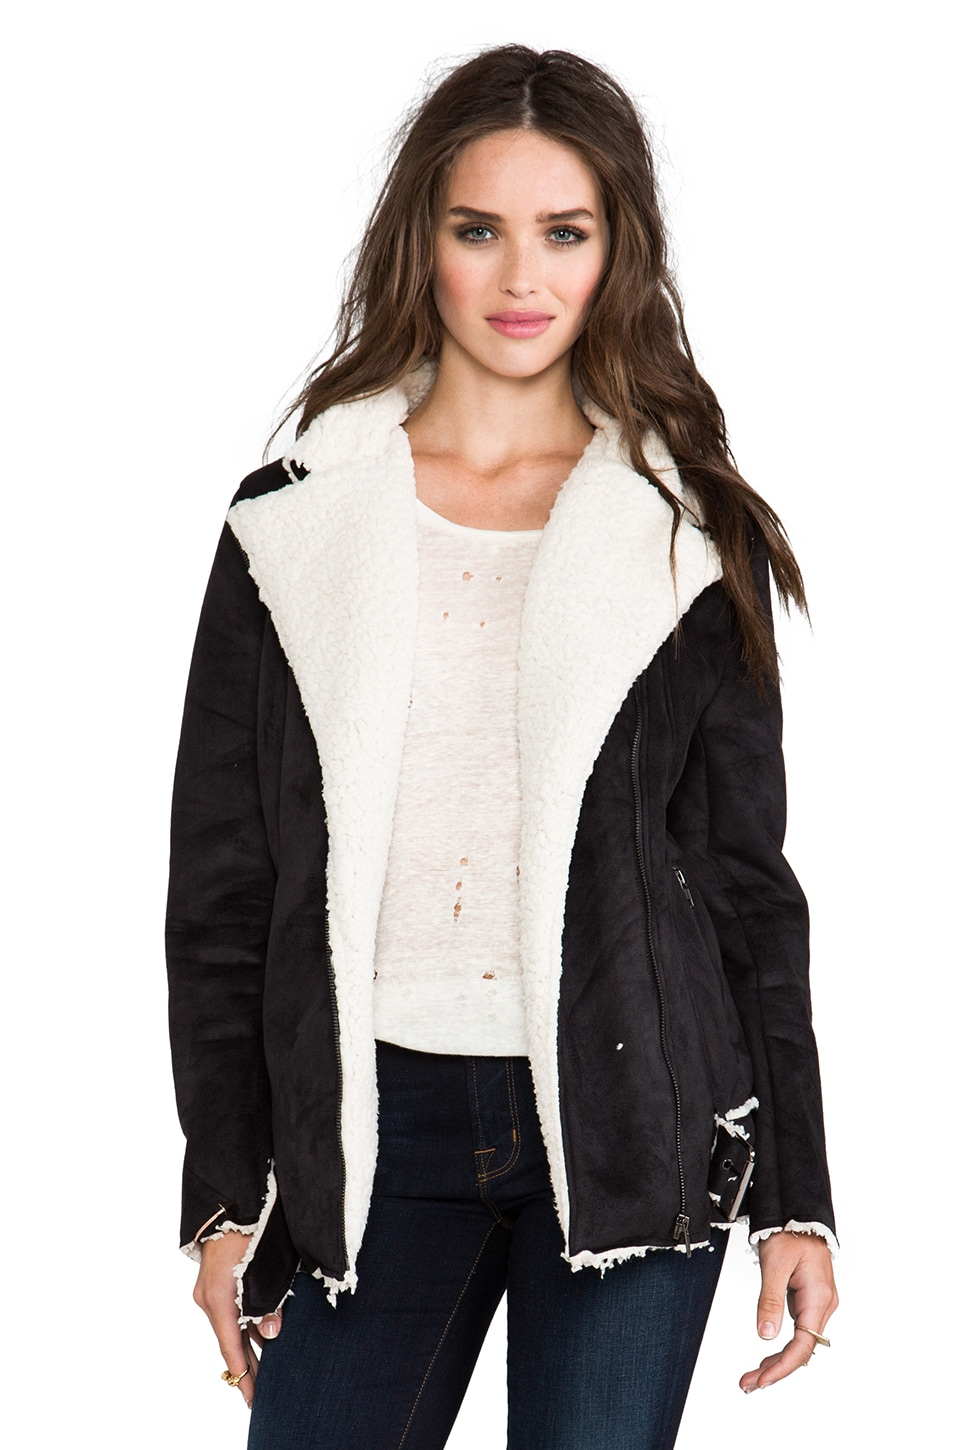 MINKPINK Always and Forever Biker Faux Shearling Jacket in Black/White